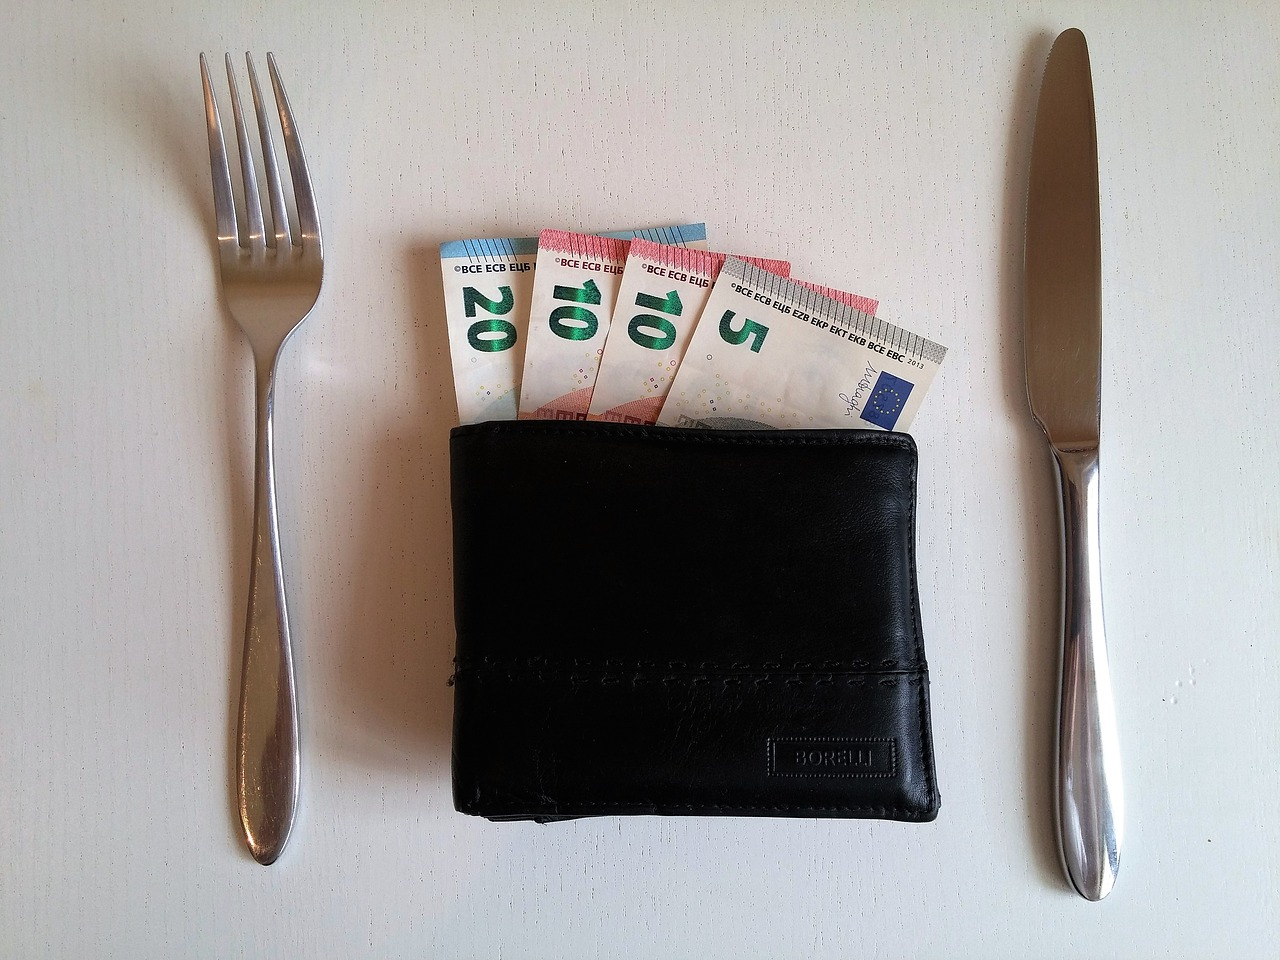 5 Simple Rules of Eating While On A Budget for Those Who Hate To Cook